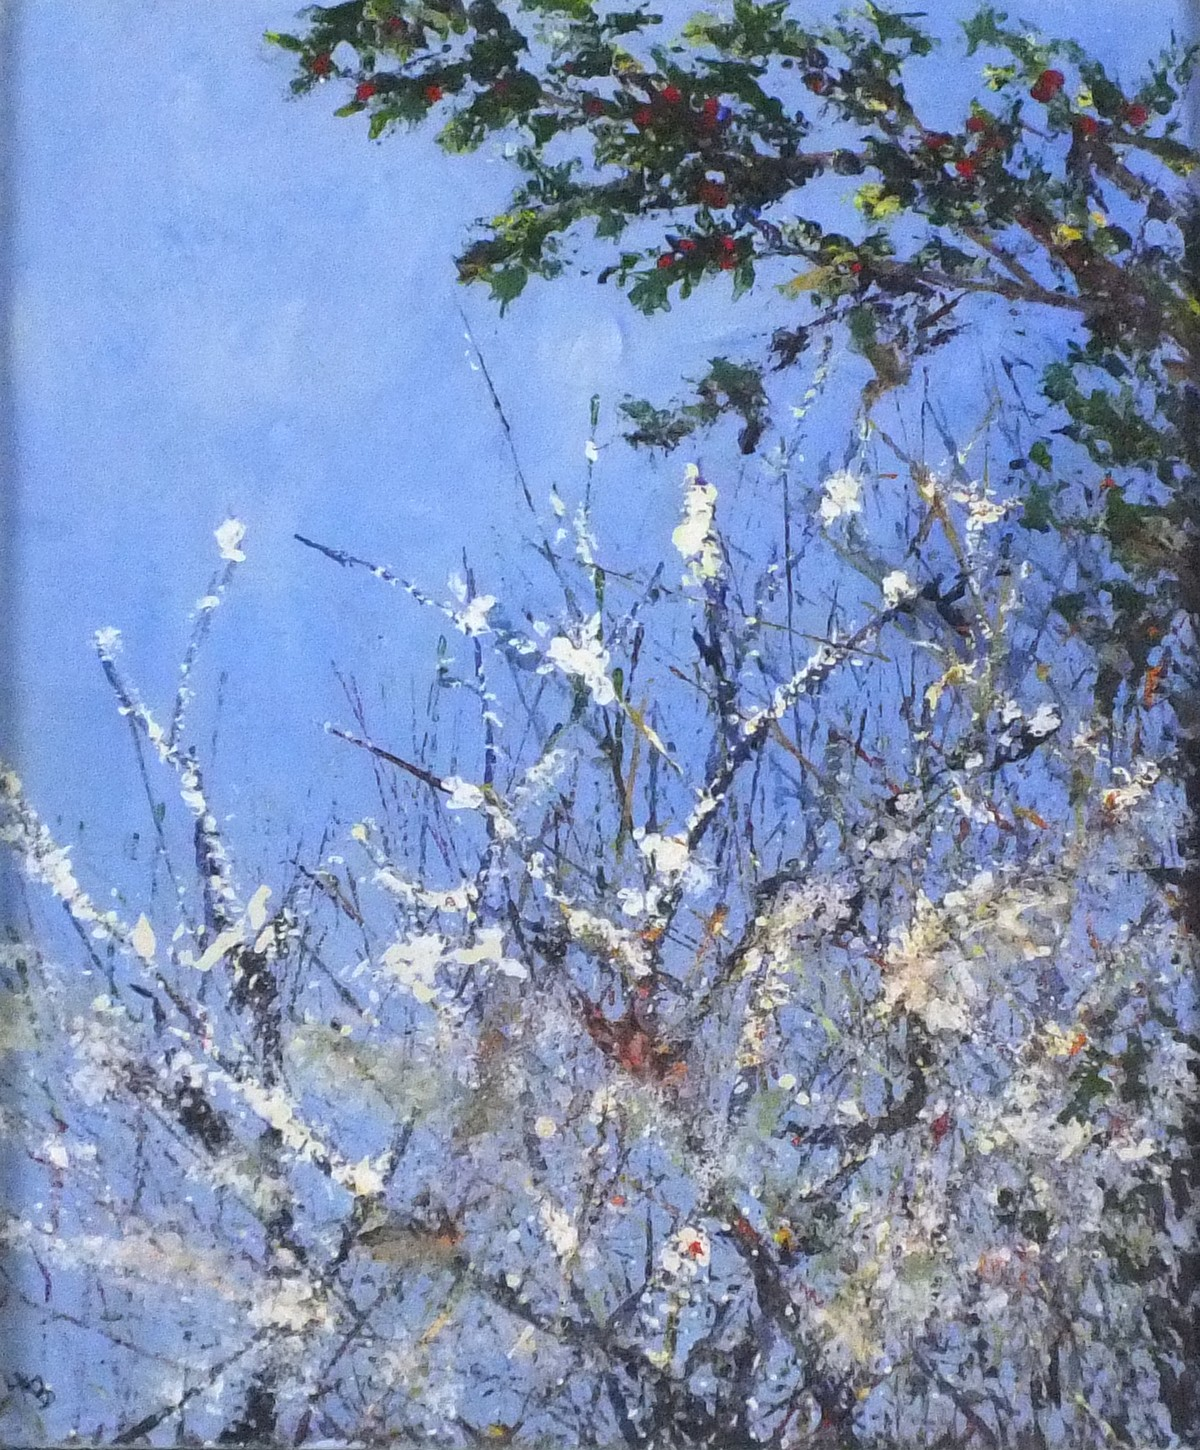 Lot 9 - Lesley BICKLEY (British b. 1955) Blackthorne Blossom, Acrylic on canvas, Signed with initials